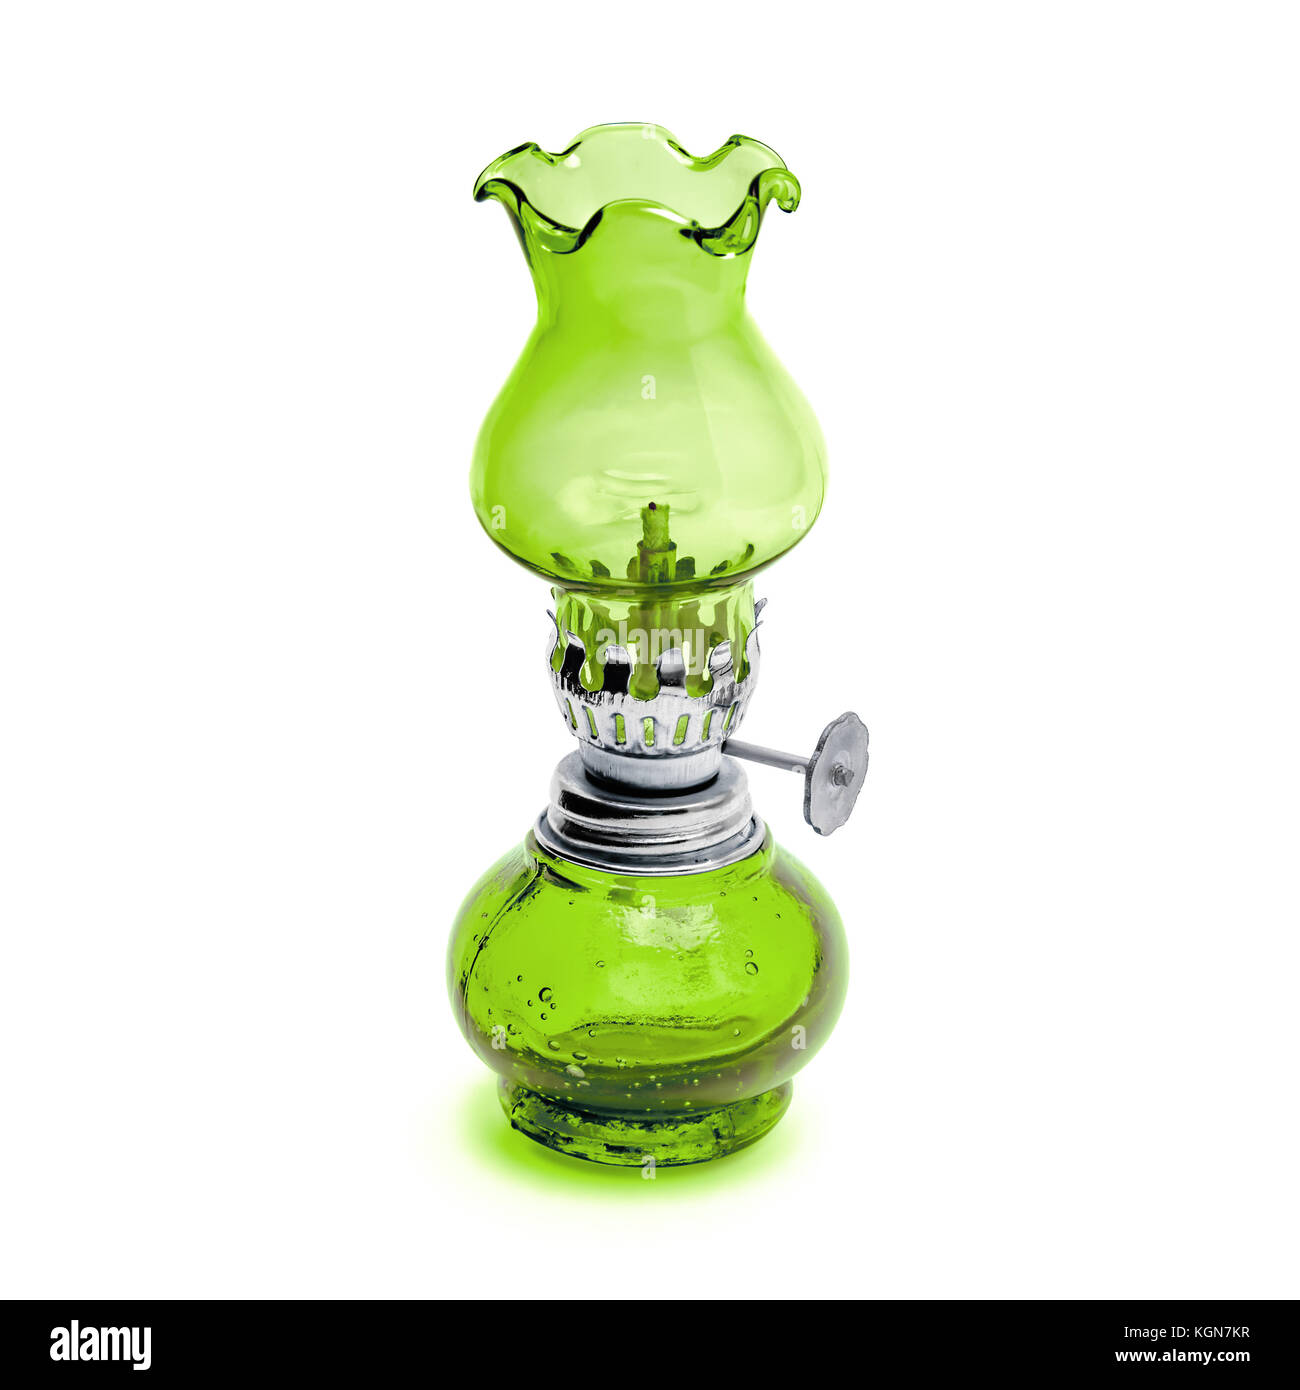 Oil lamp wick lantern made of green glass and metal isolated on white background - Stock Image